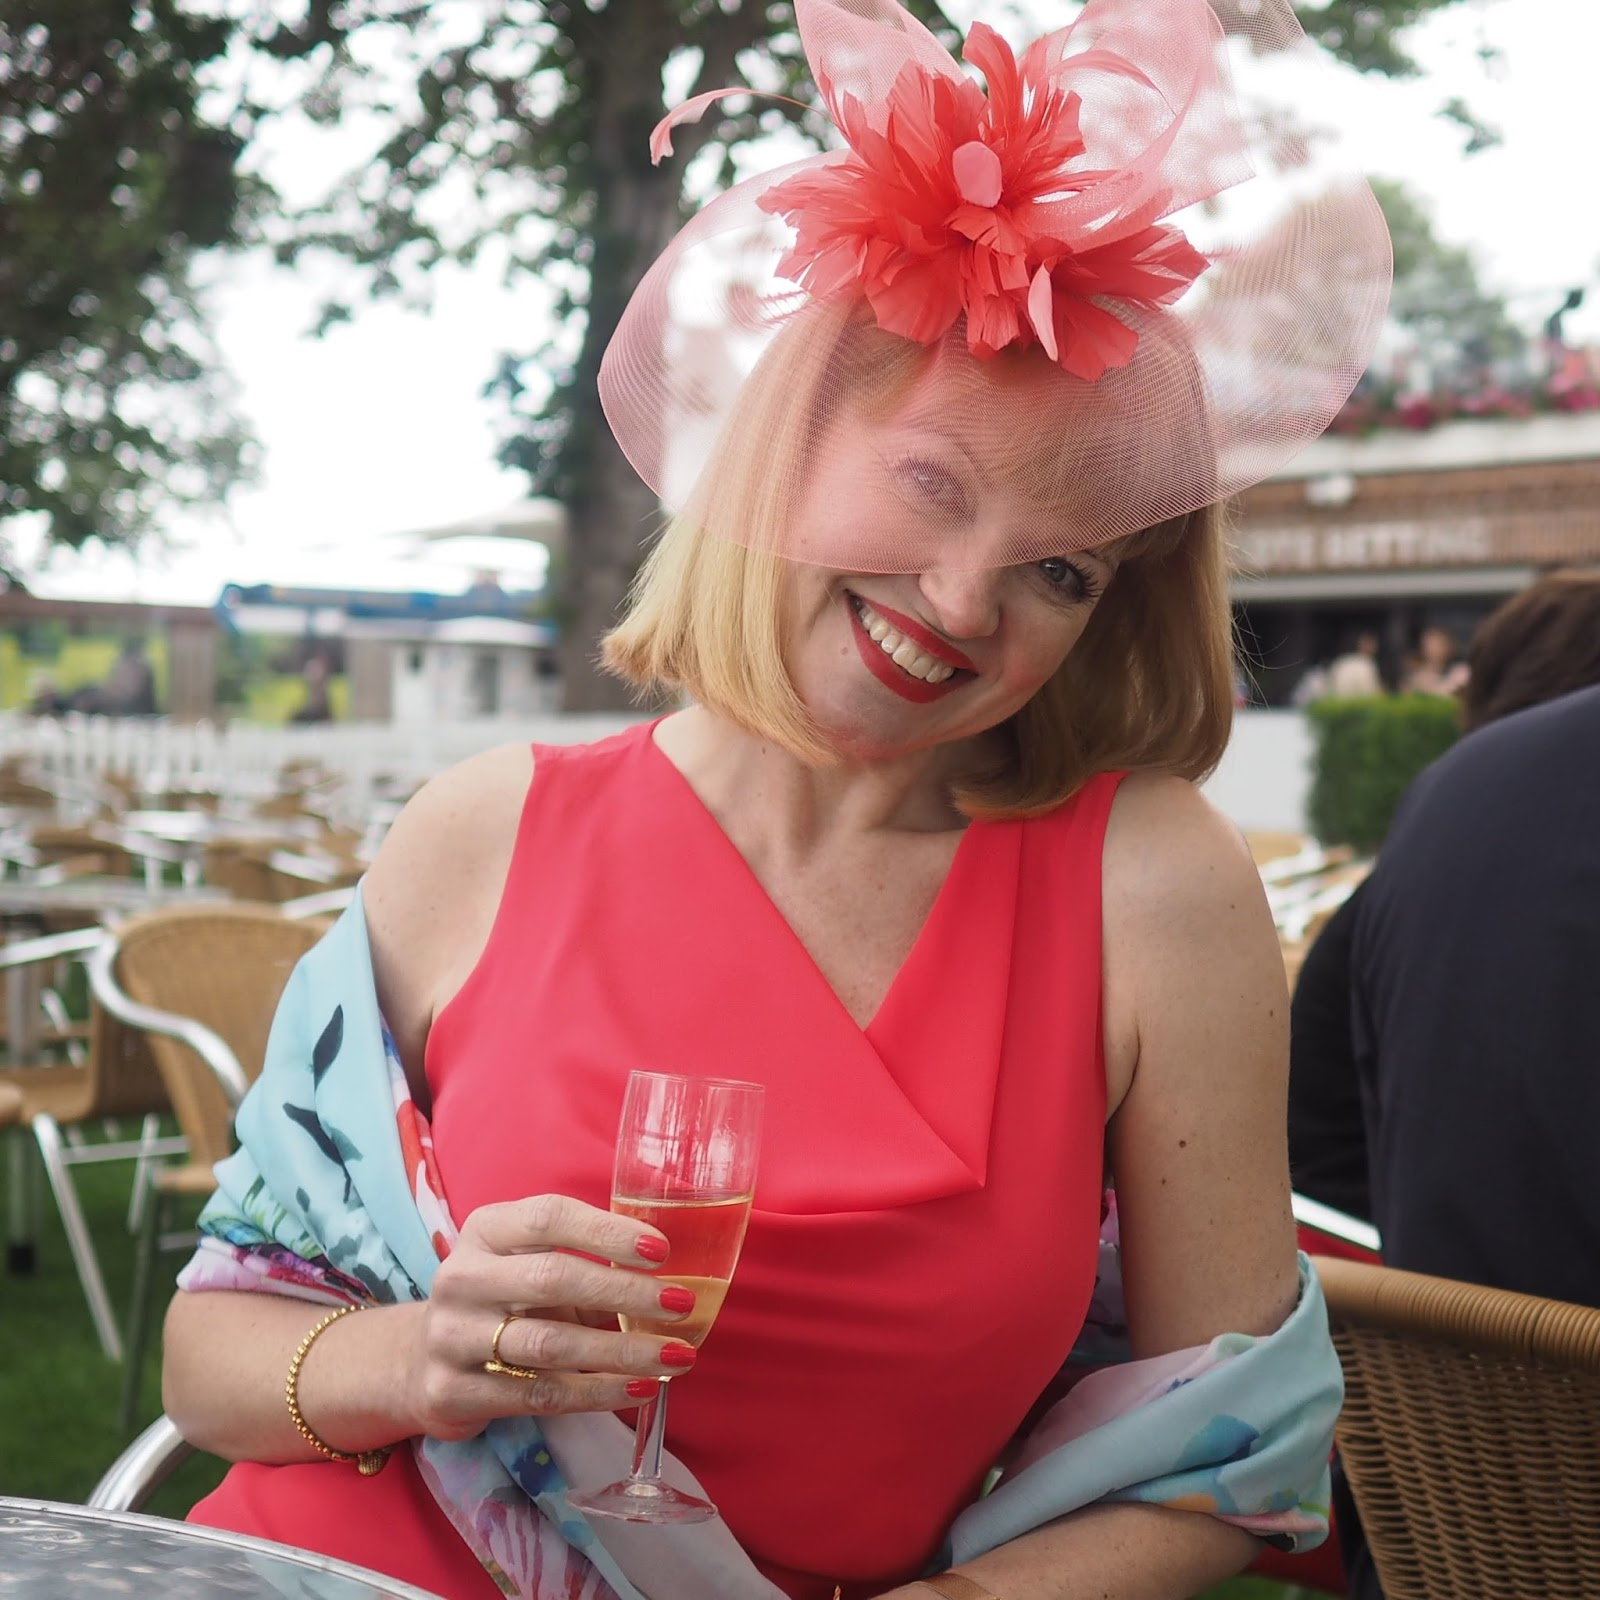 Champagne at York races